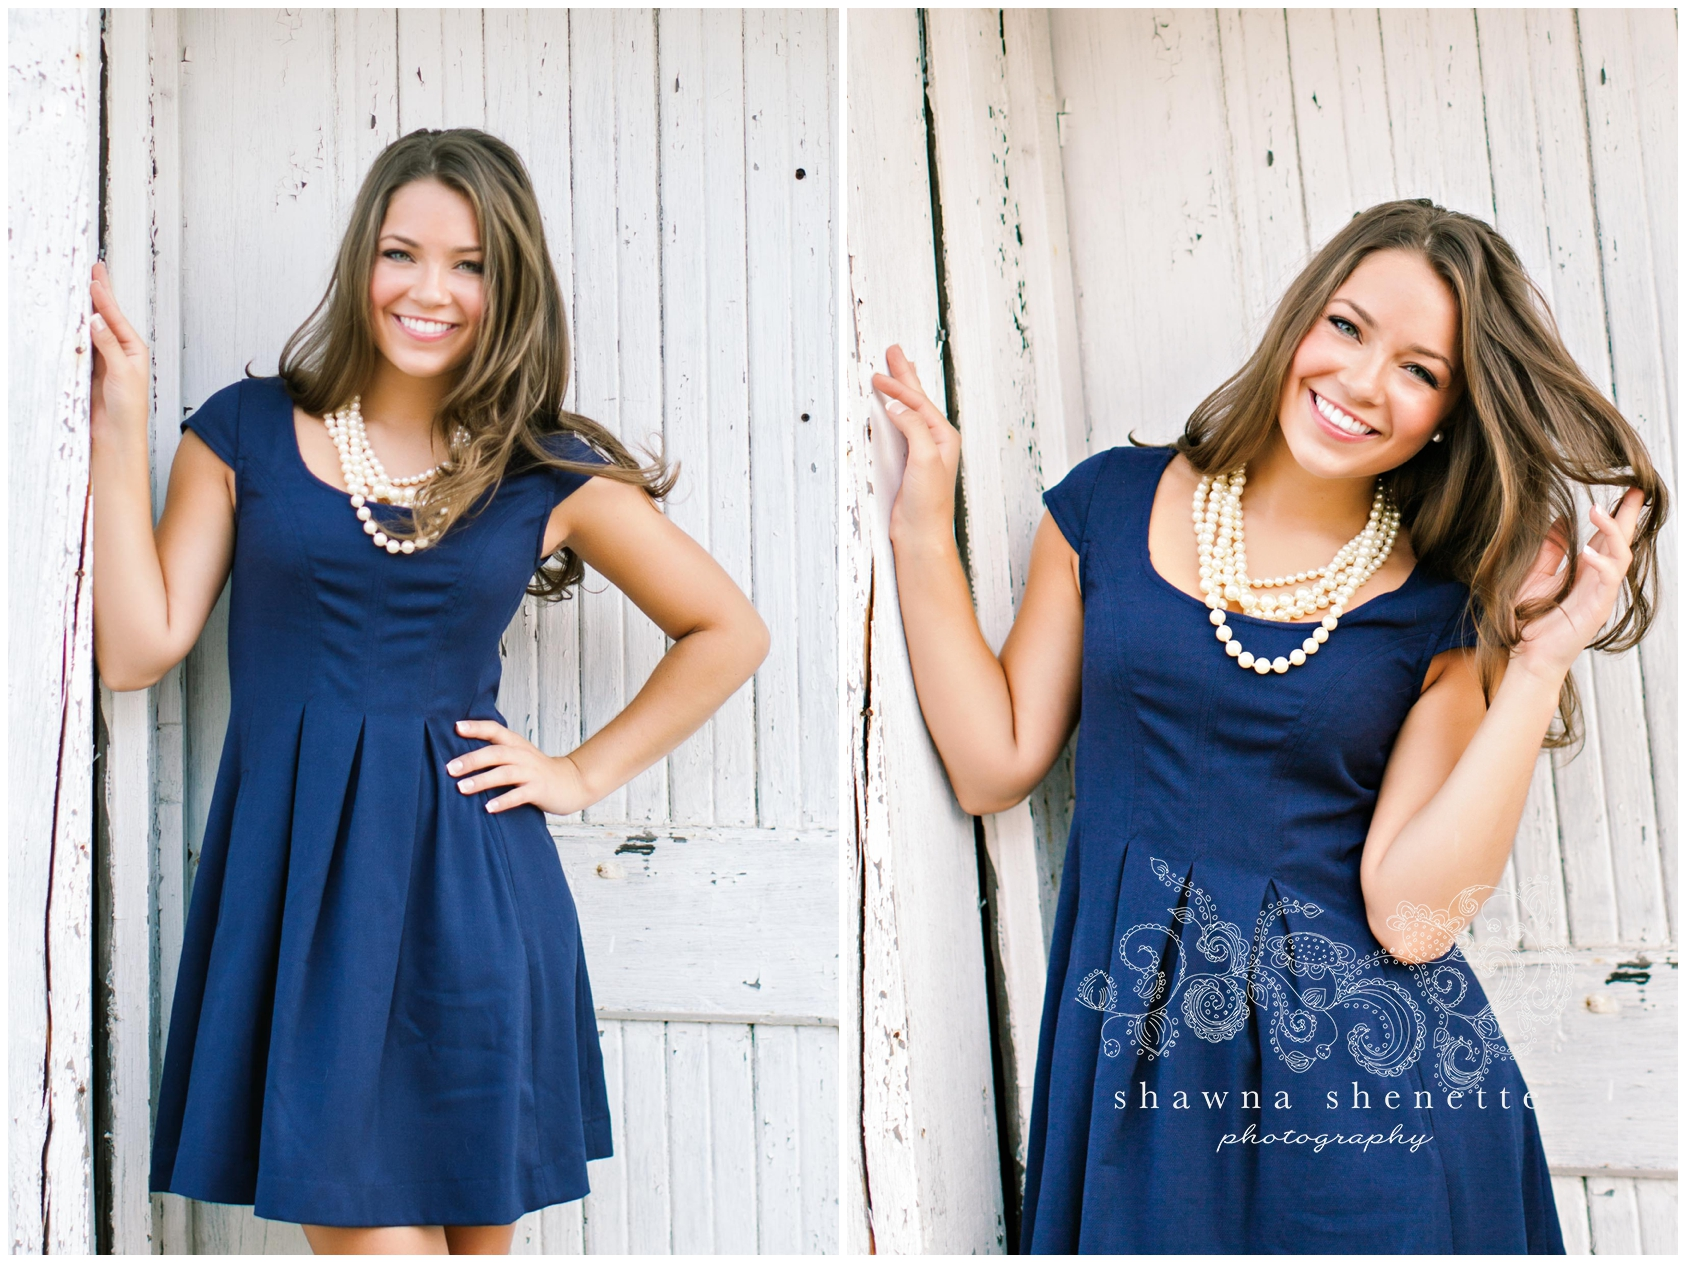 Massachusetts Senior Photographer Worcester Academy 2015 Senior Portraits Millbury MA Senior Photos